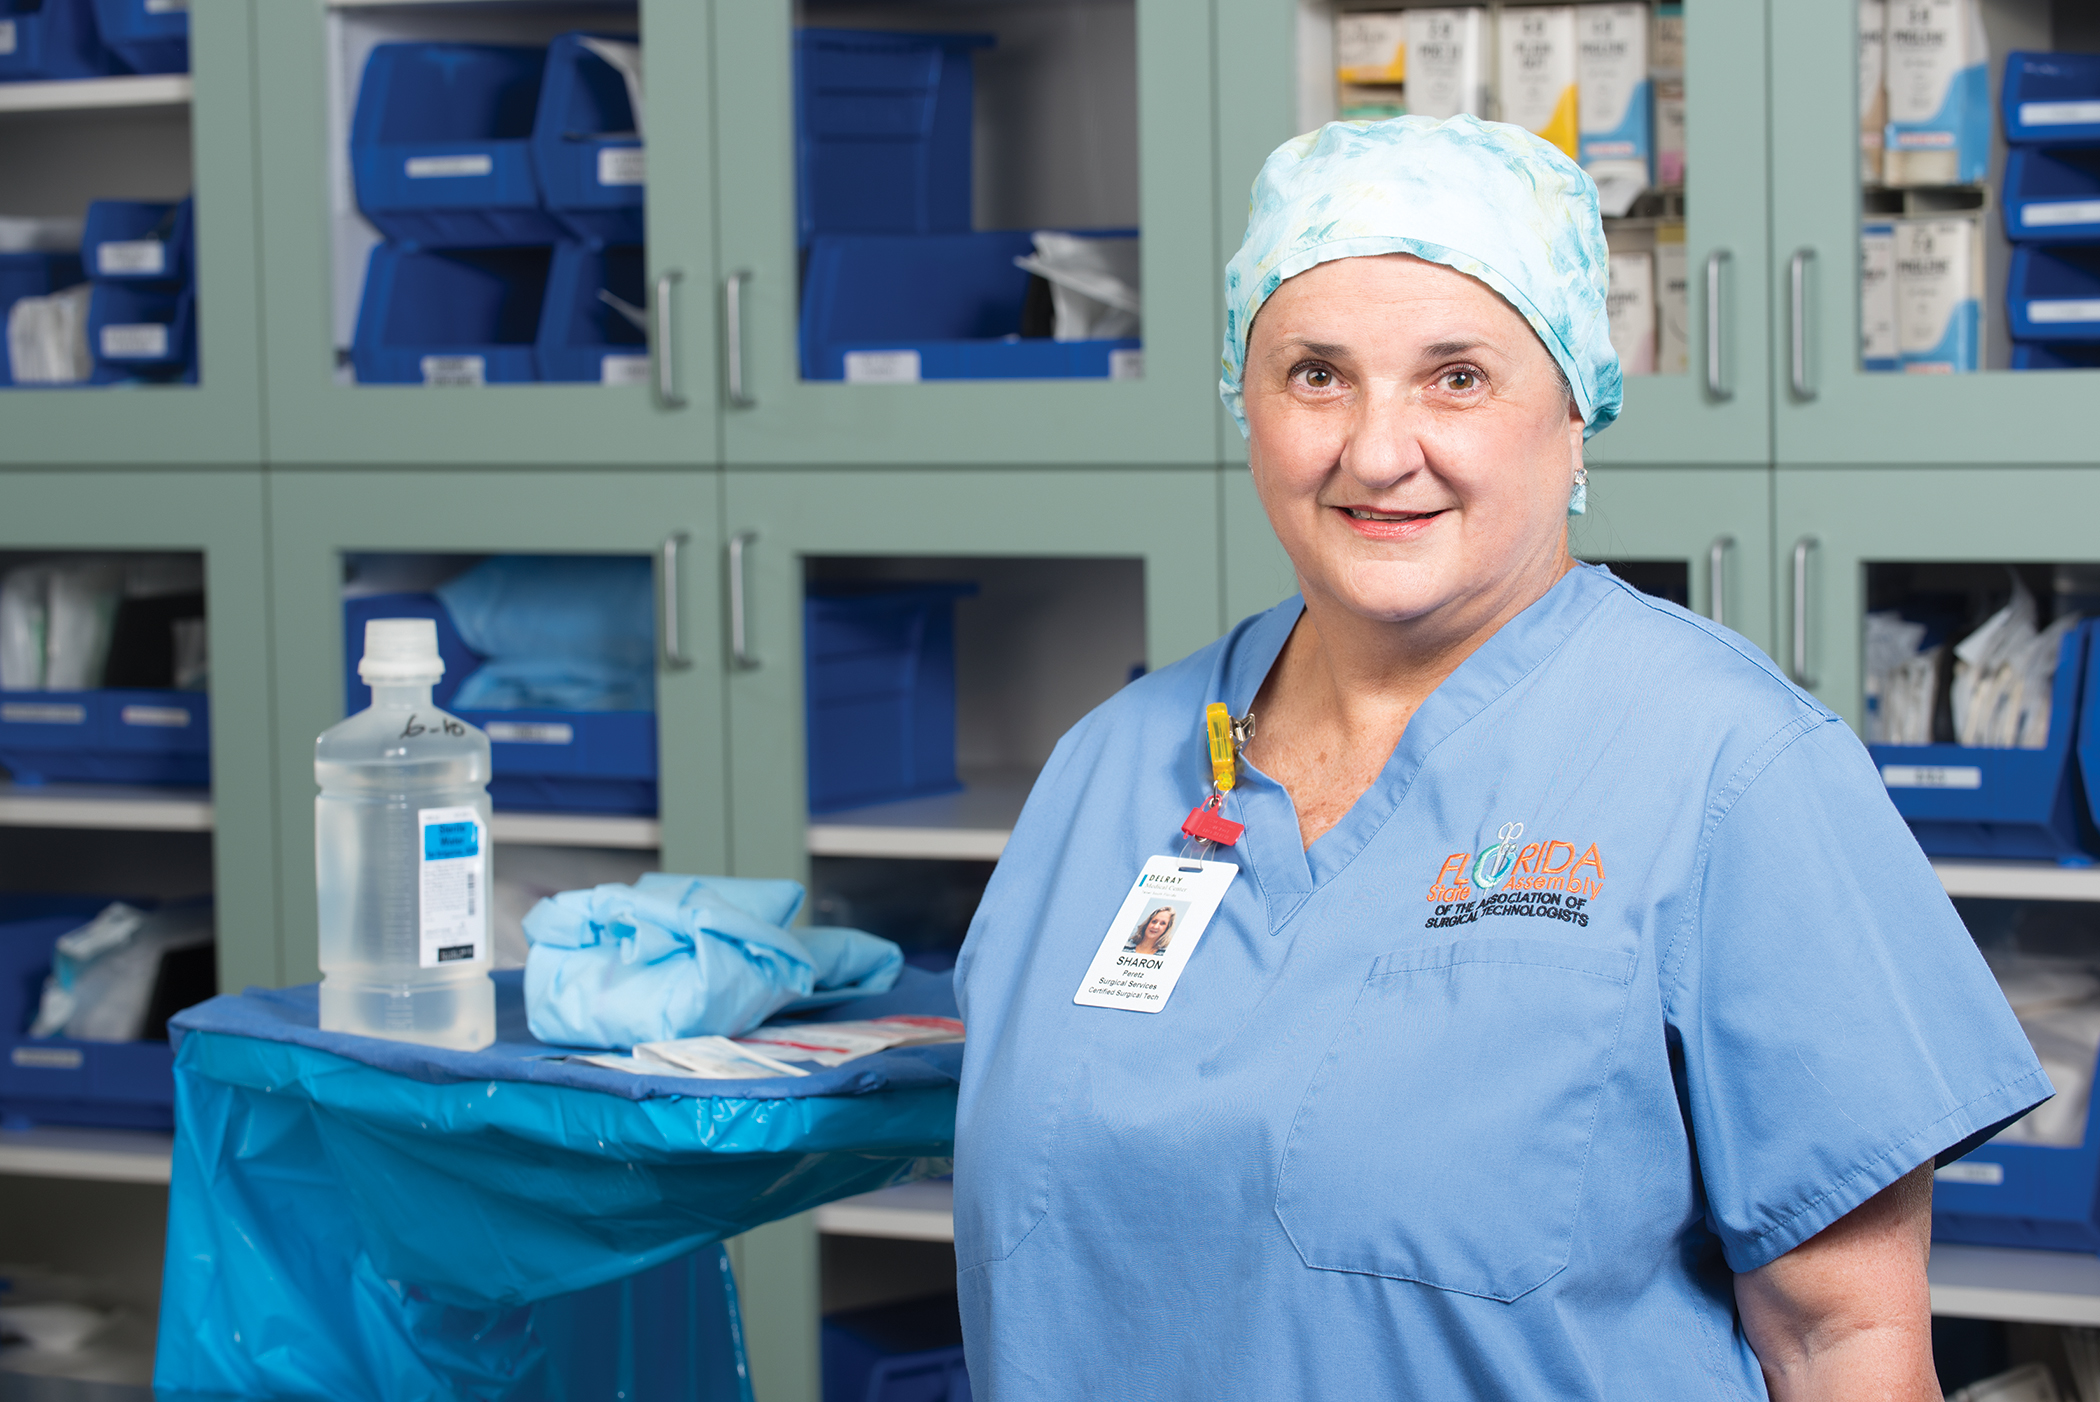 Peretz became a certified surgical technologist. She works at Delray Medical Center assisting in emergency surgeries.